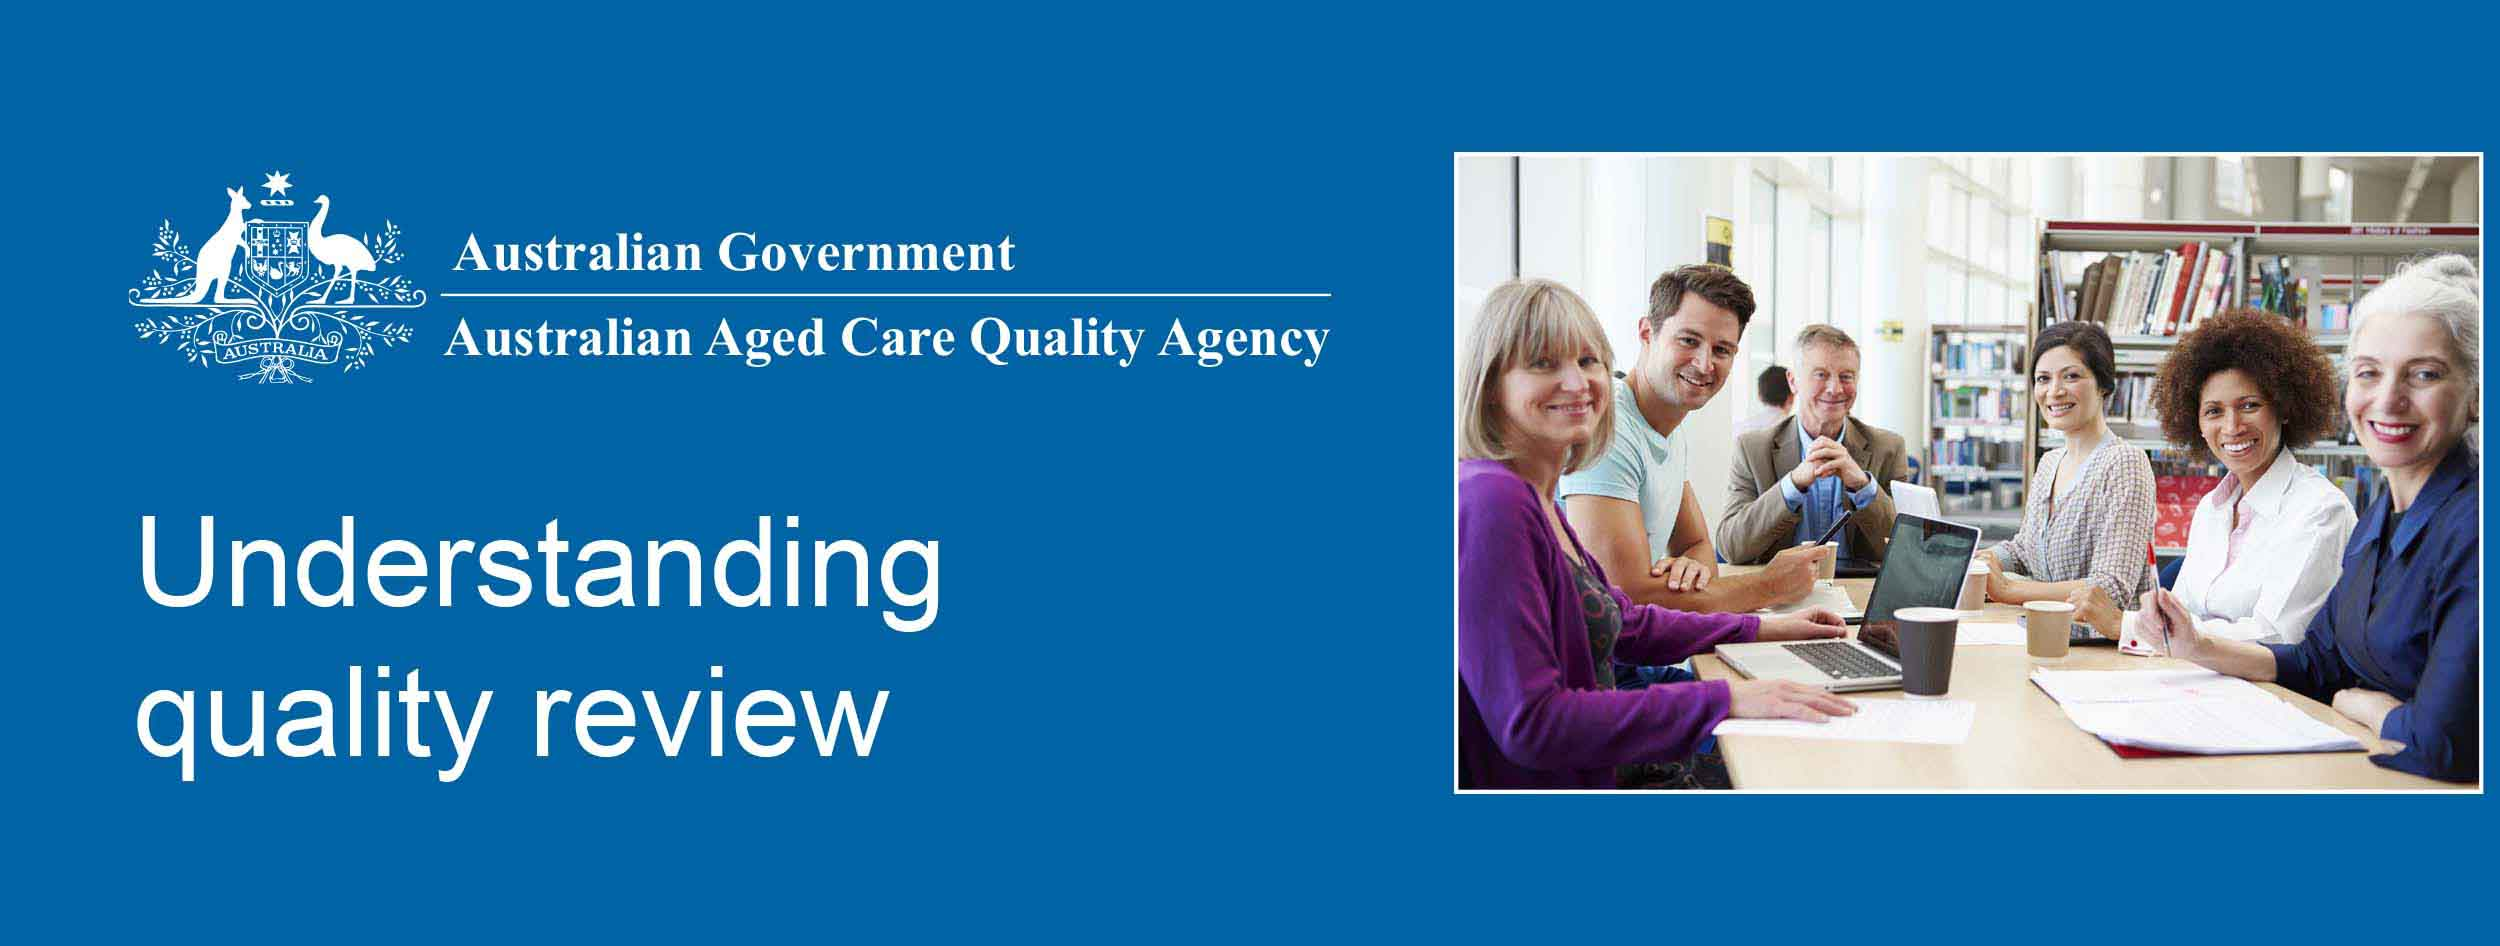 Understanding quality review - Box Hill - 24 - 25 October 2017